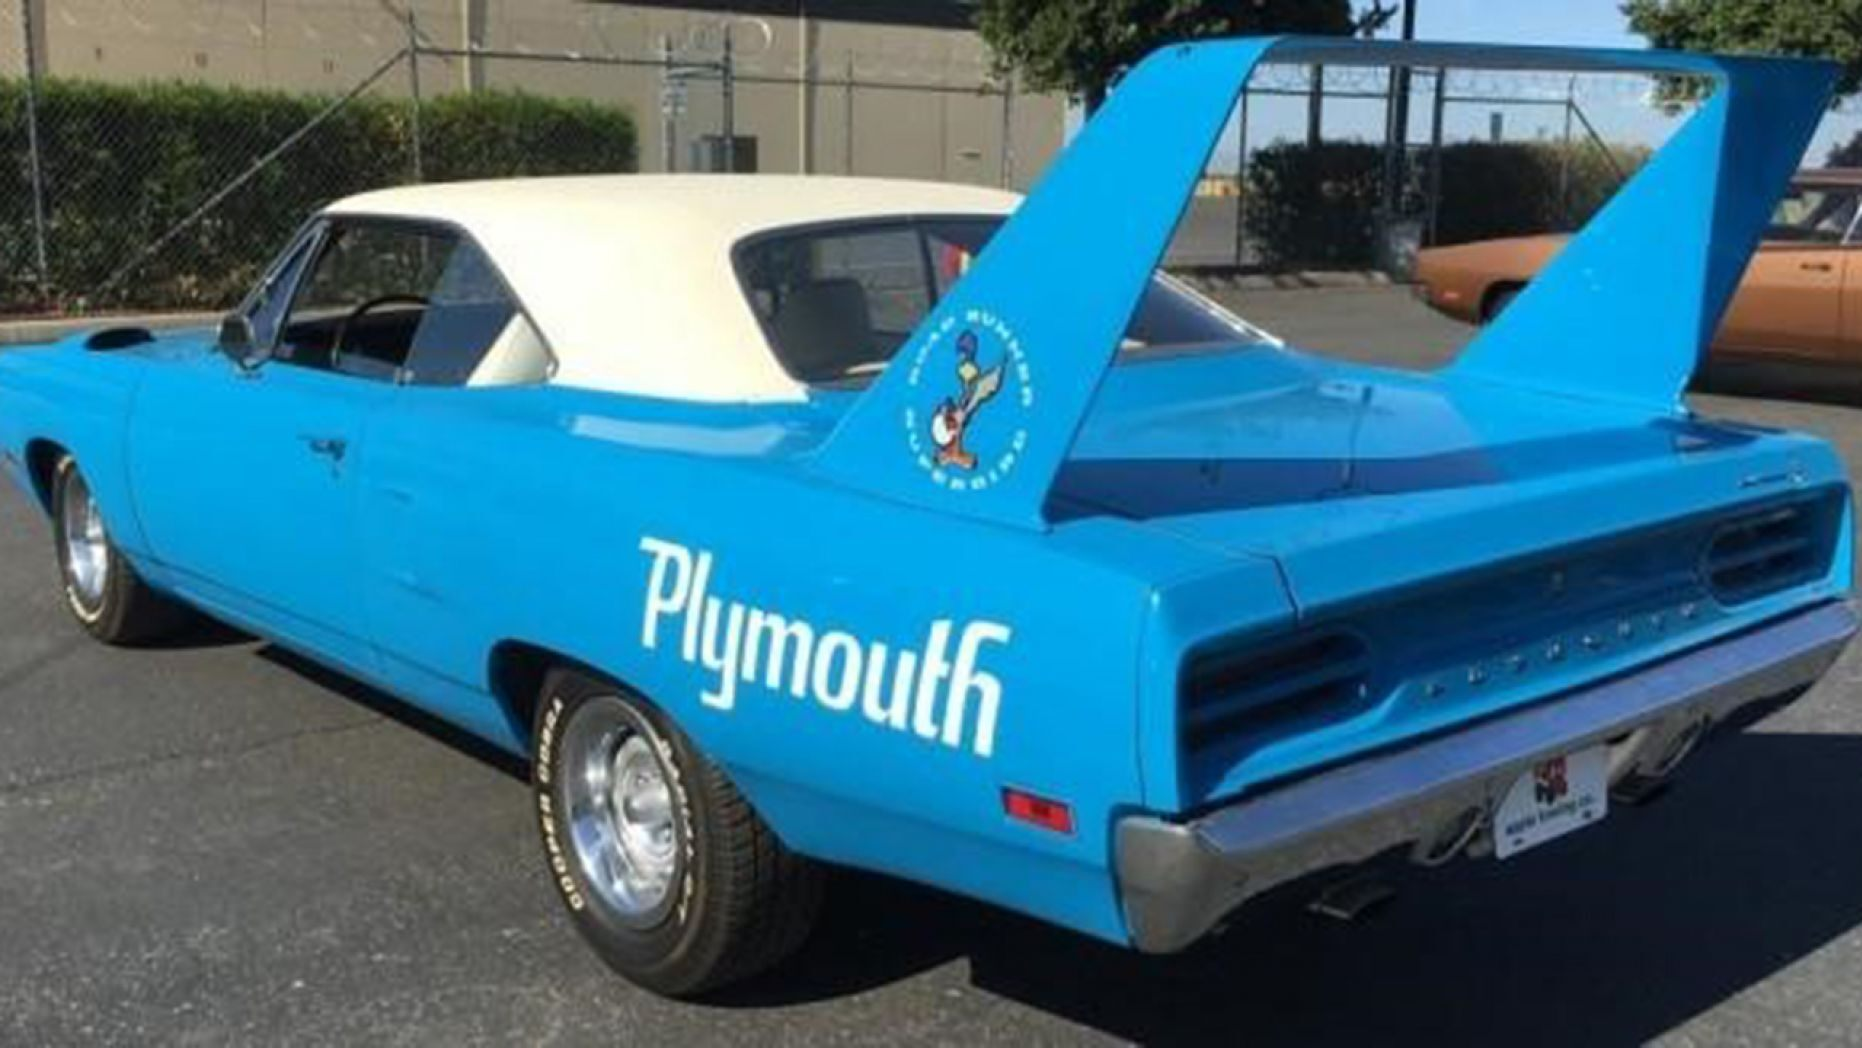 US Marshals auction Burt Reynolds' Trans Am with bankrupt firm's 100-plus car collection